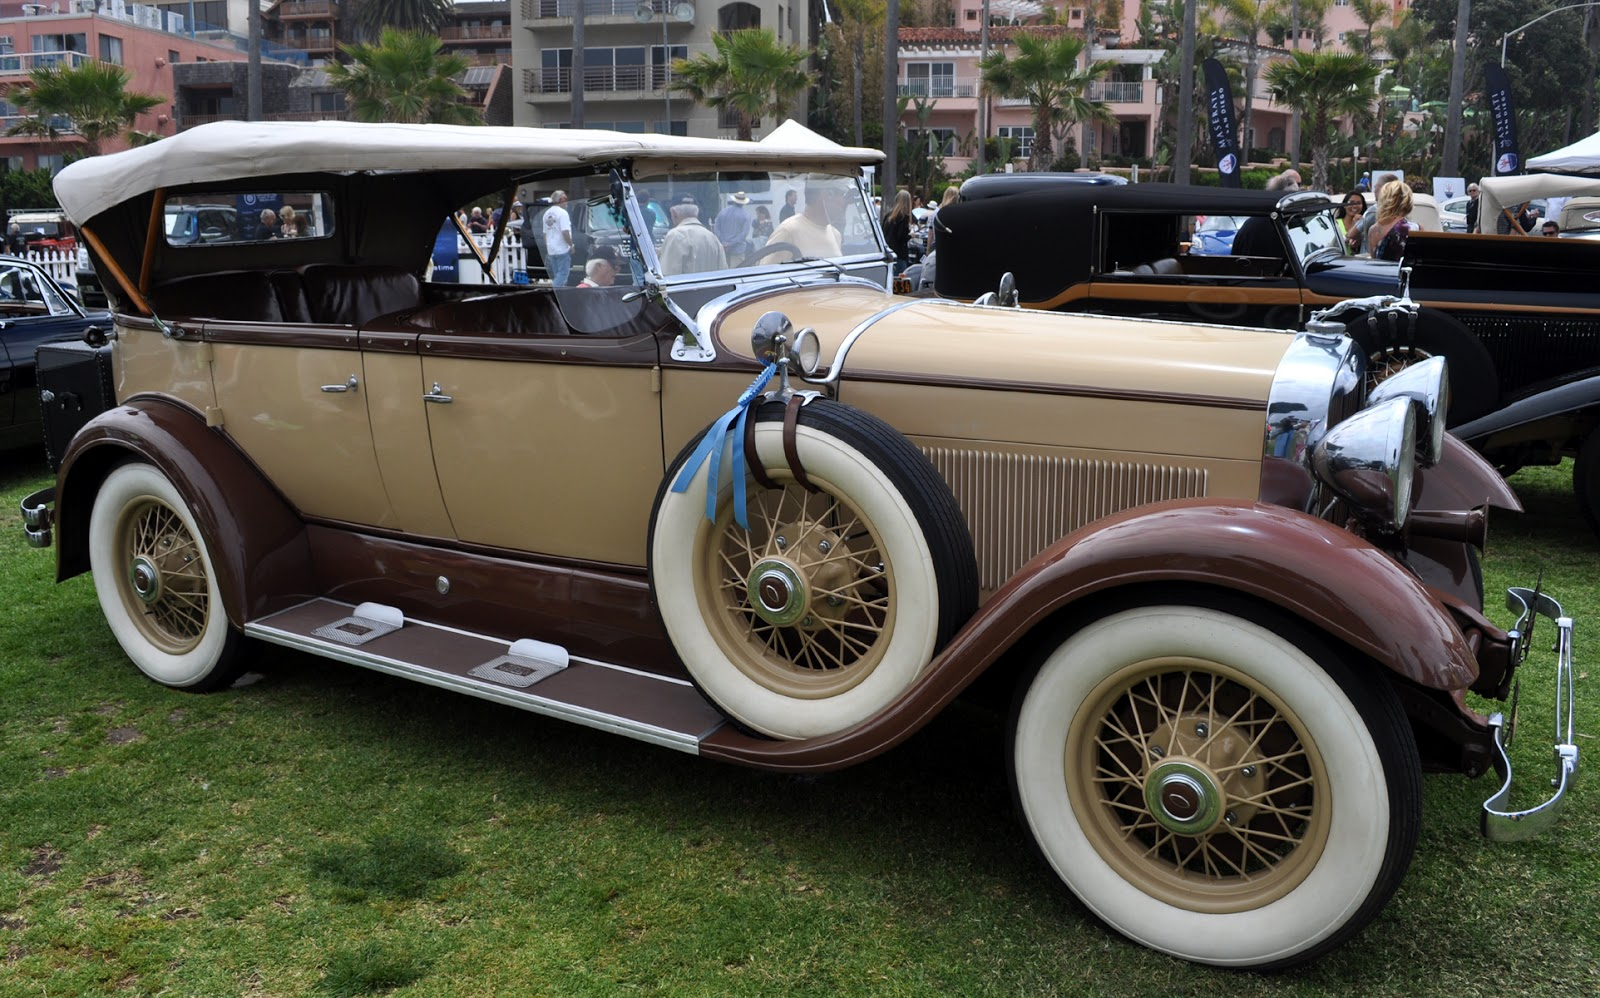 Just A Car Guy 1930 Lincoln Sport Phaeton with the most